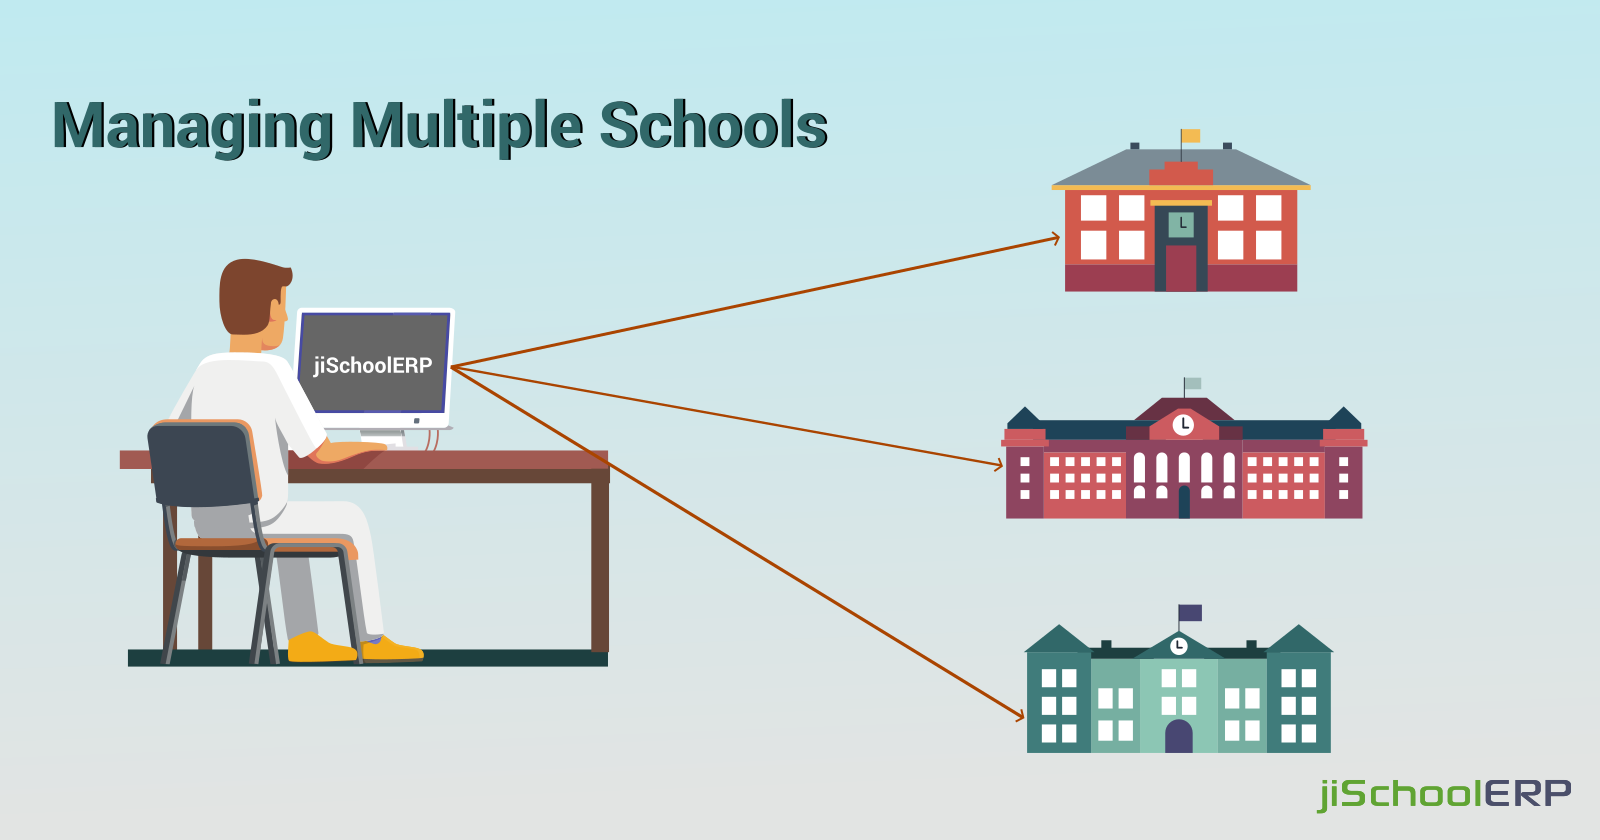 Features to Look for in a Multi-School Management Solution